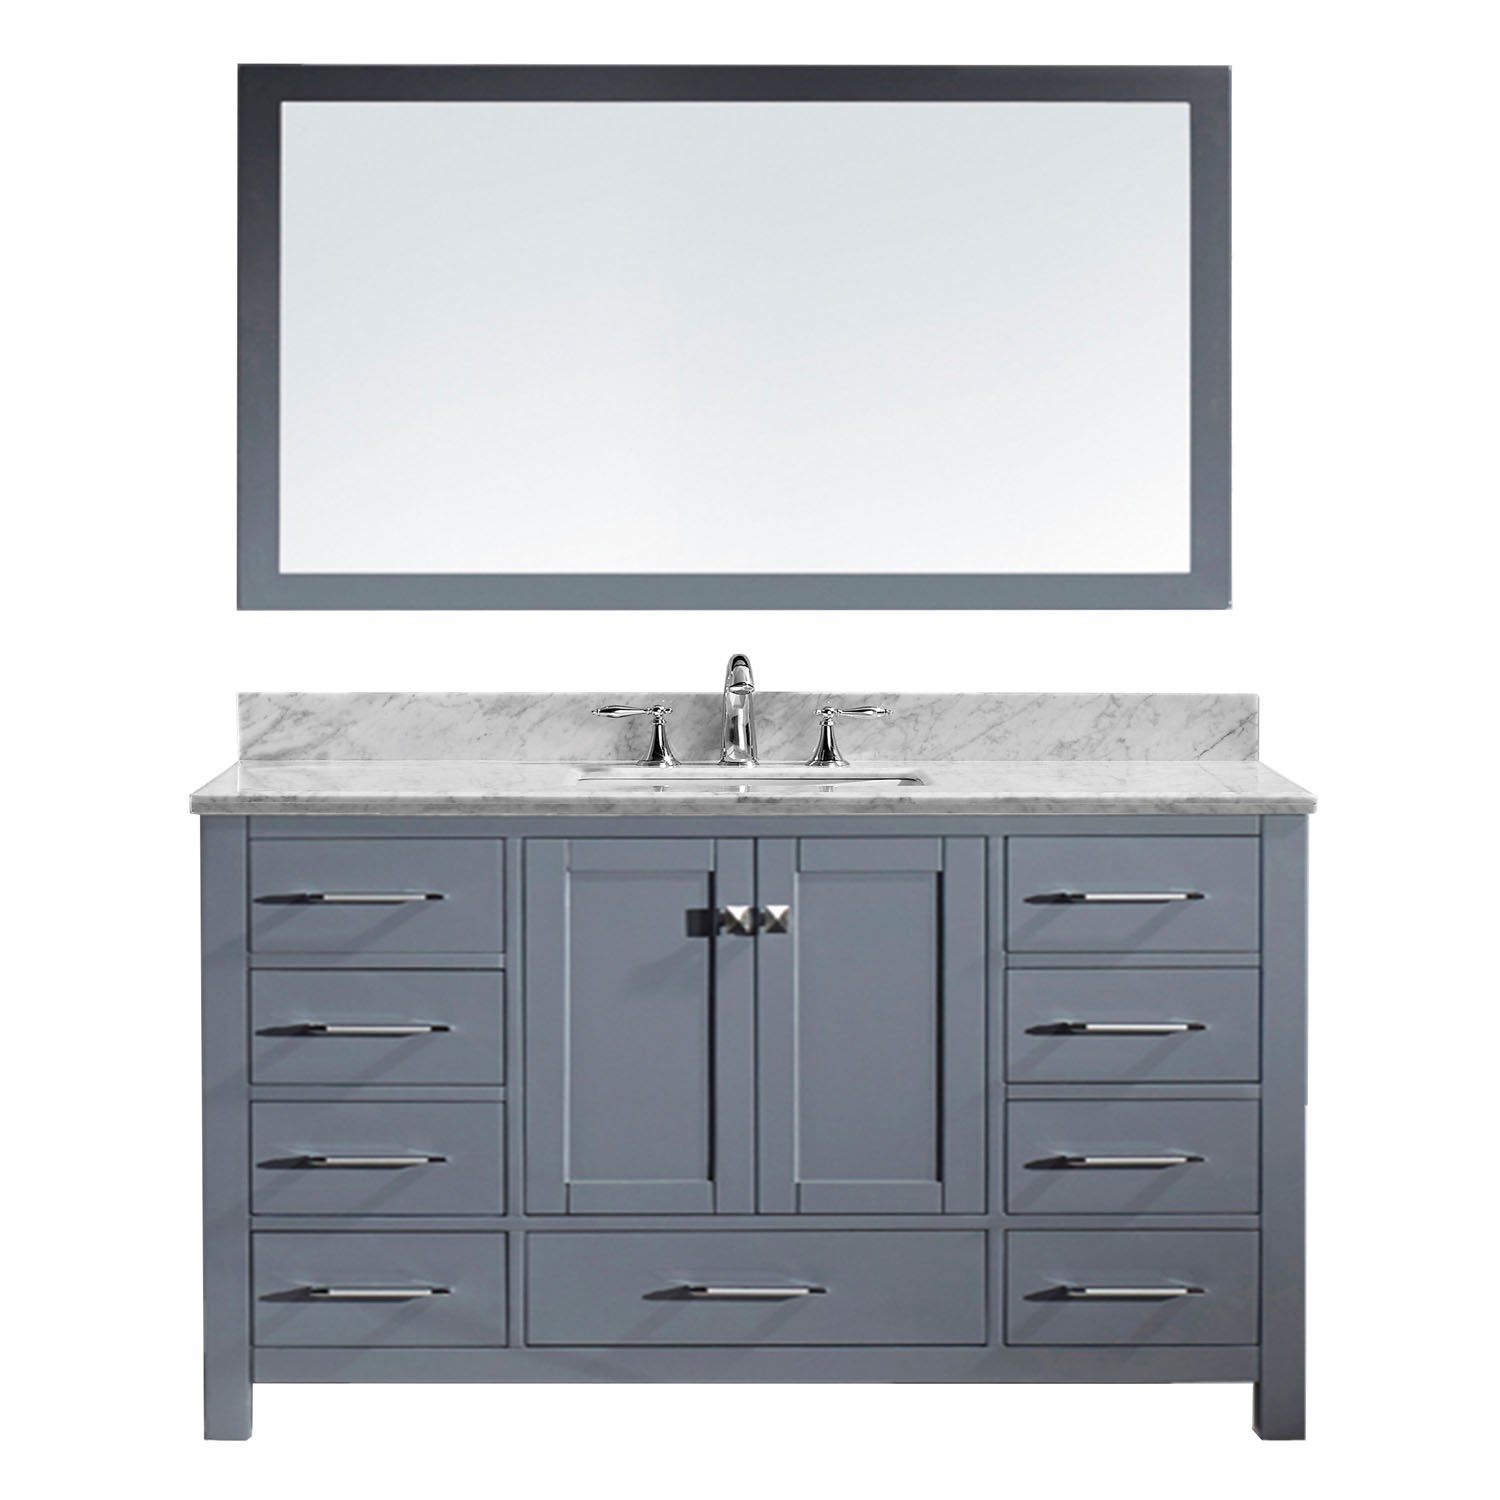 Virtu USA GS-50060-Wmsq-GR Caroline Avenue Single Bathroom Vanity with Marble Top/Square Sink with Mirror, 60'', Grey by Virtu USA